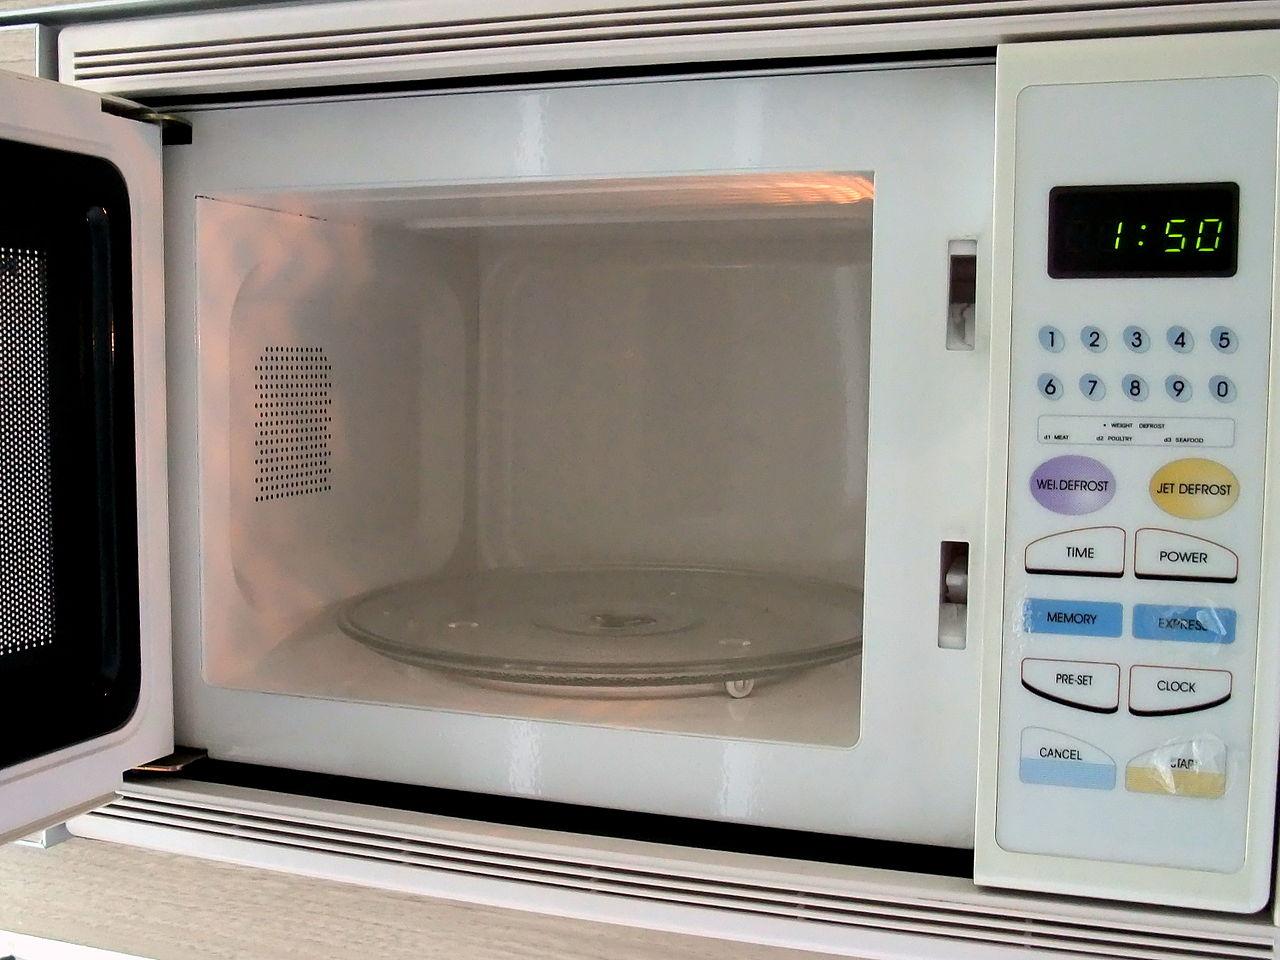 https://commons.wikimedia.org/wiki/File:Microwave_oven_(interior).jpg